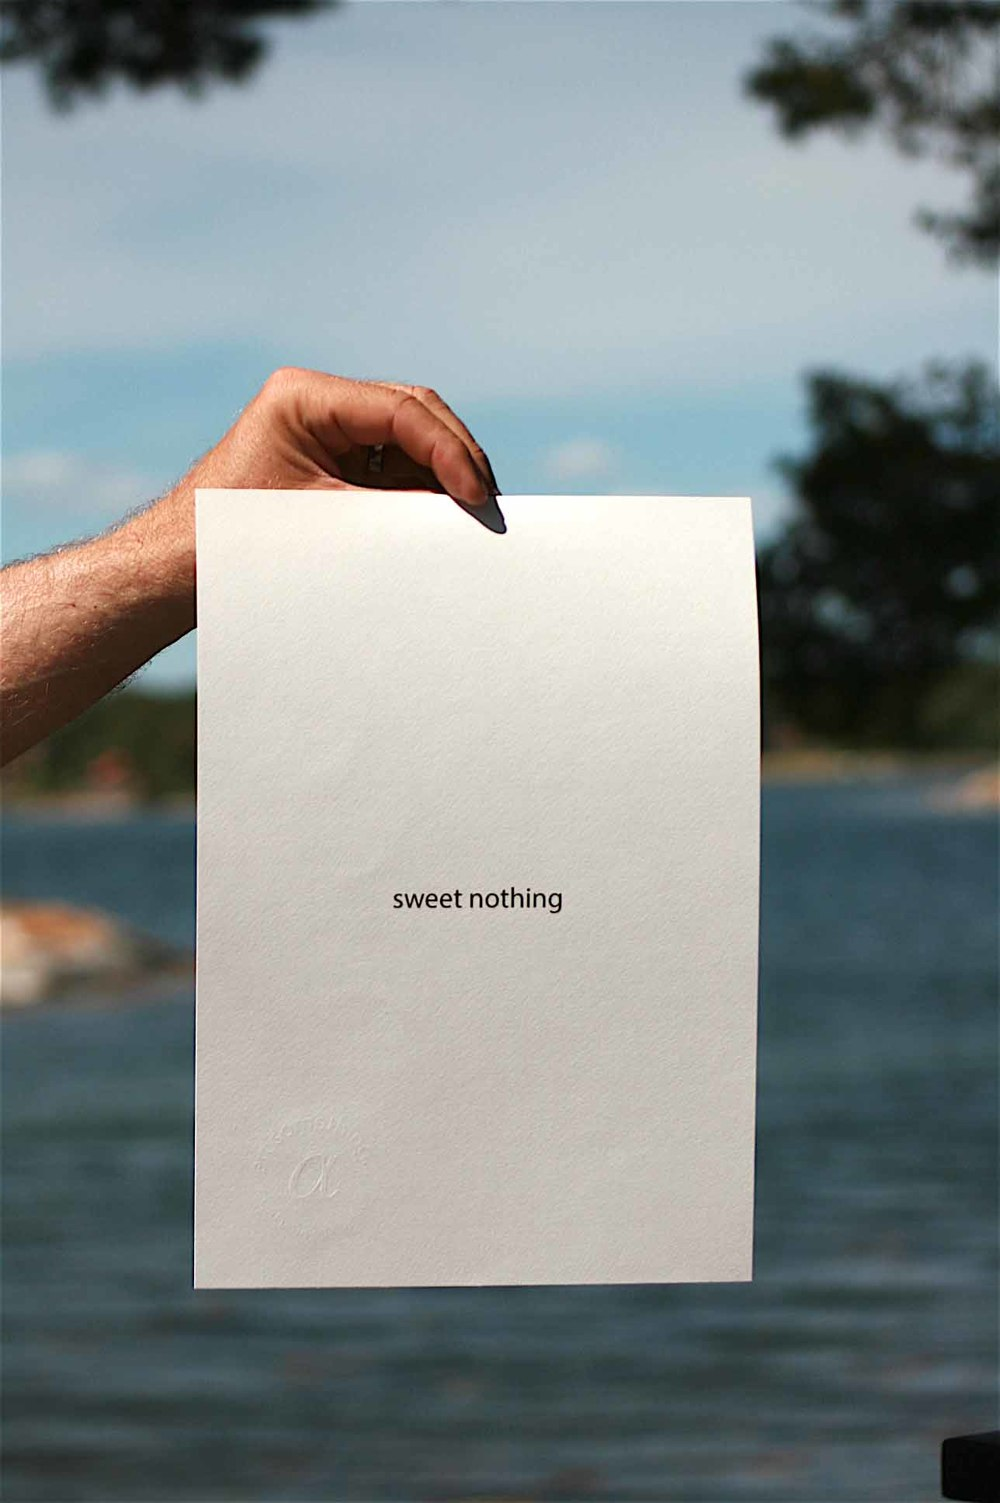 sweet nothing.jpg